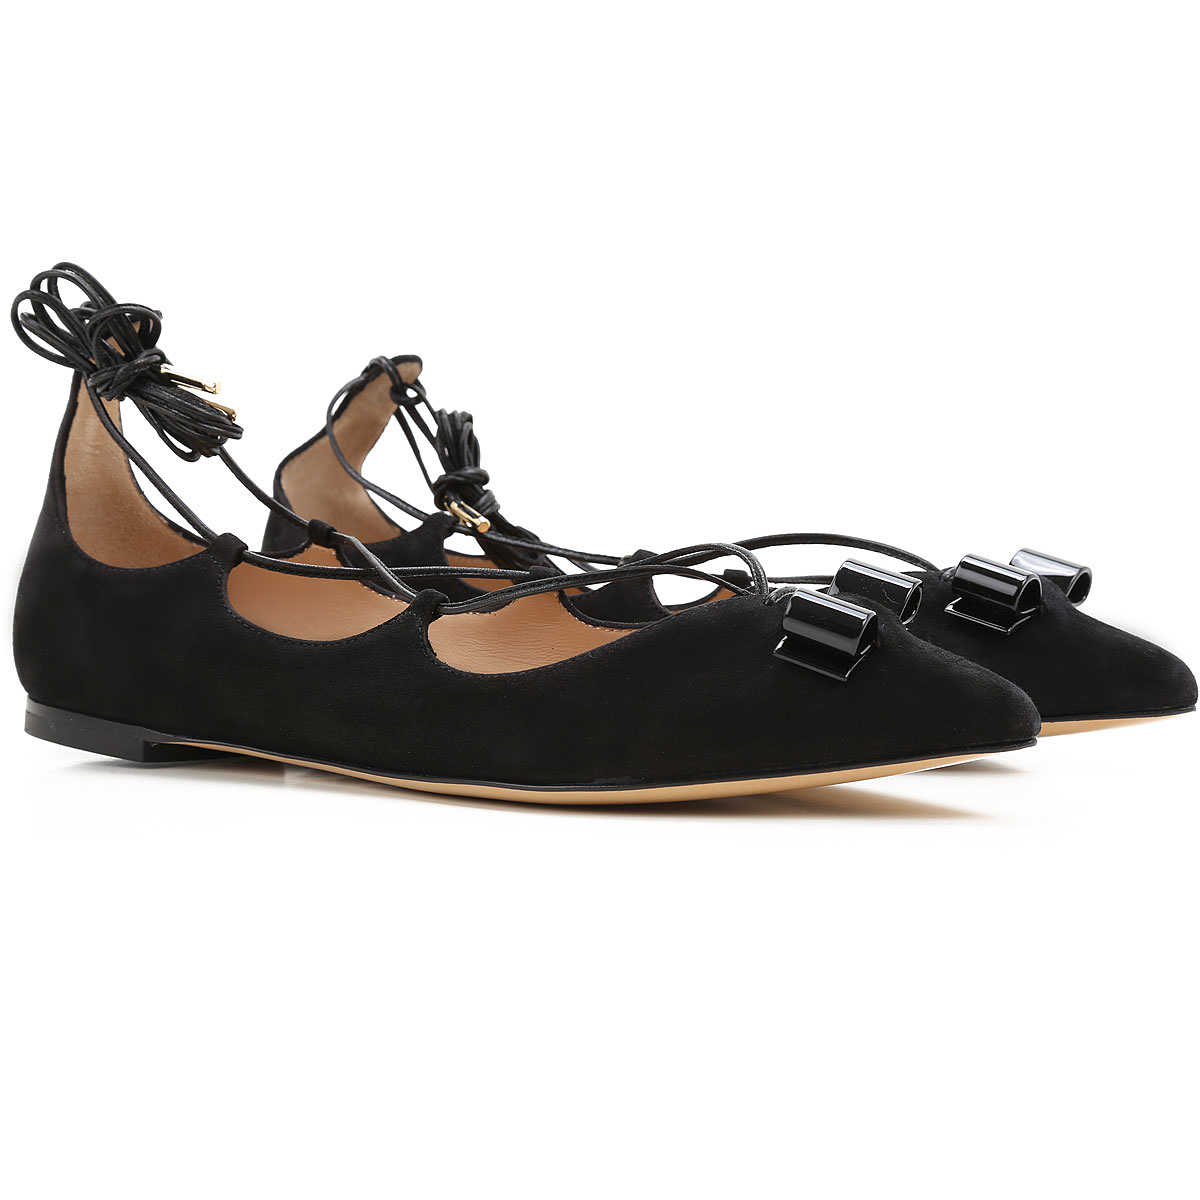 Salvatore Ferragamo Ballet Flats Ballerina Shoes for Women On Sale in Outlet Black DK - GOOFASH - Womens BALLERINAS